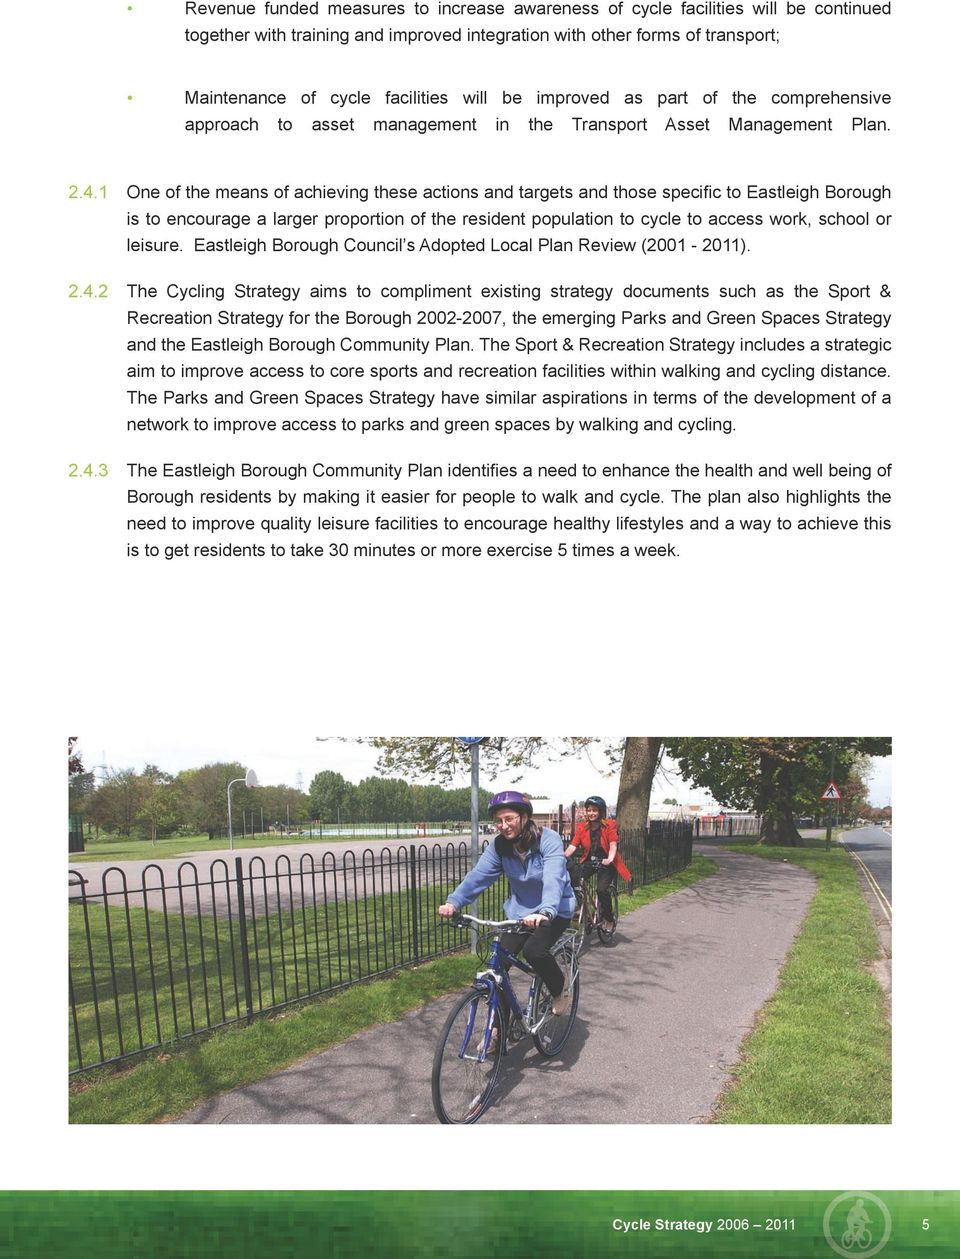 1 One of the means of achieving these actions and targets and those specific to Eastleigh Borough is to encourage a larger proportion of the resident population to cycle to access work, school or